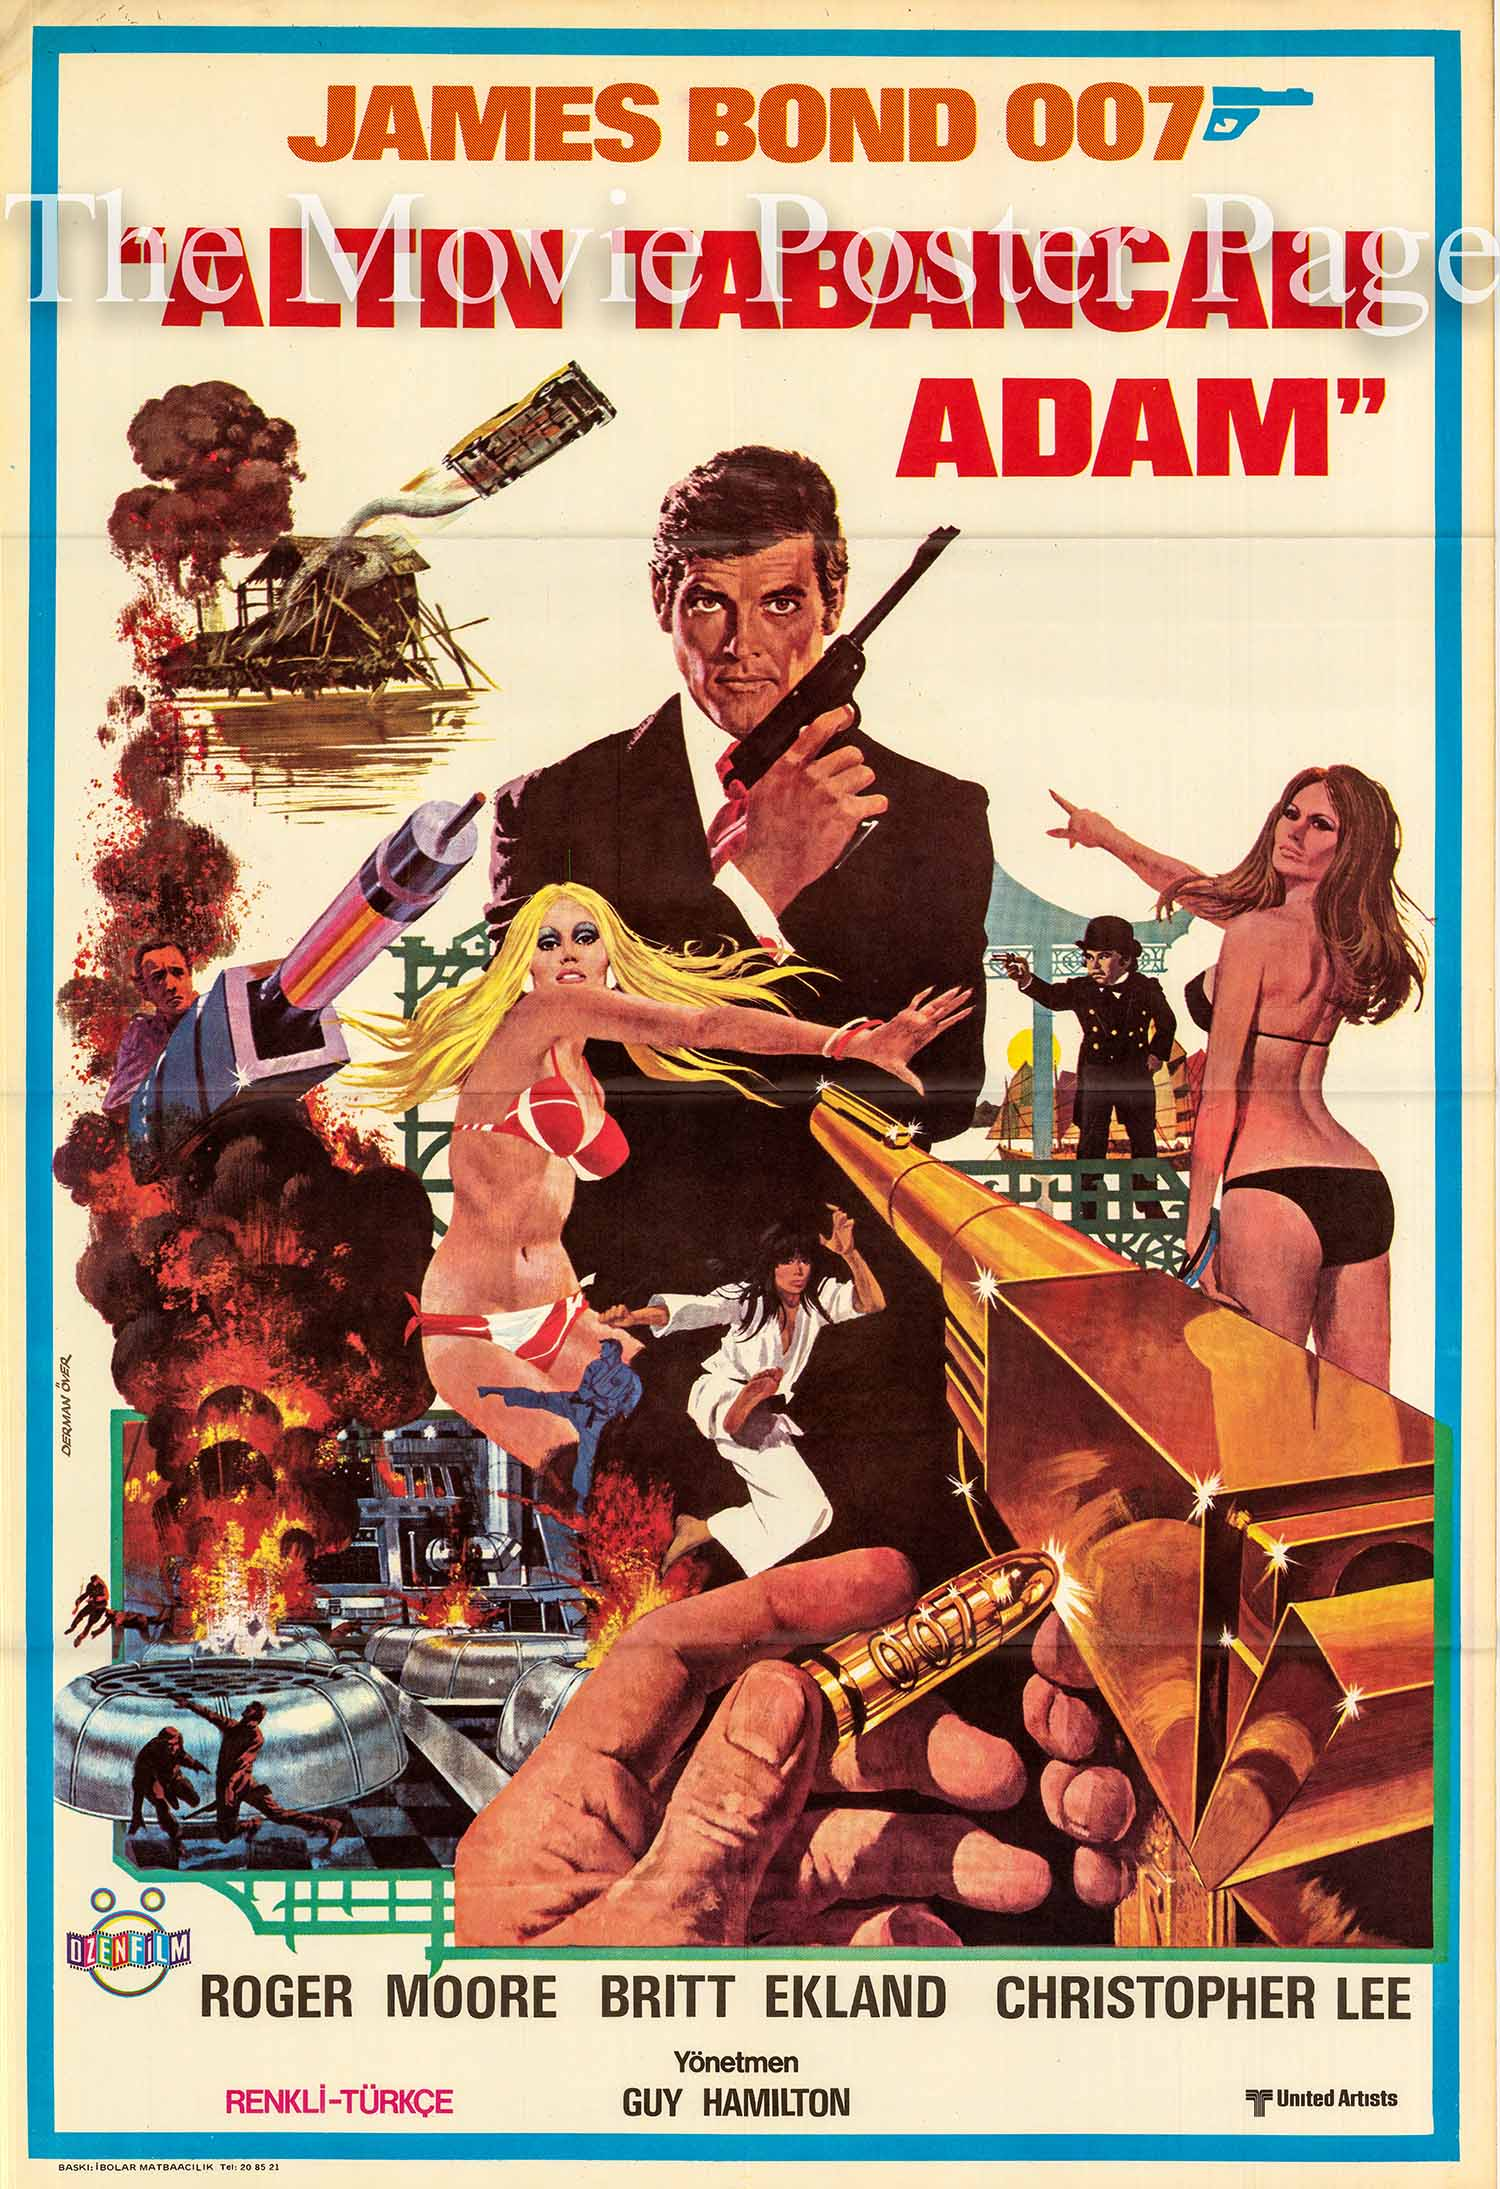 Pictured is a Turkish promotional poster for the 1974 Guy Hamilton film The Man with the Golden Gun starring Roger Moore as James Bond.